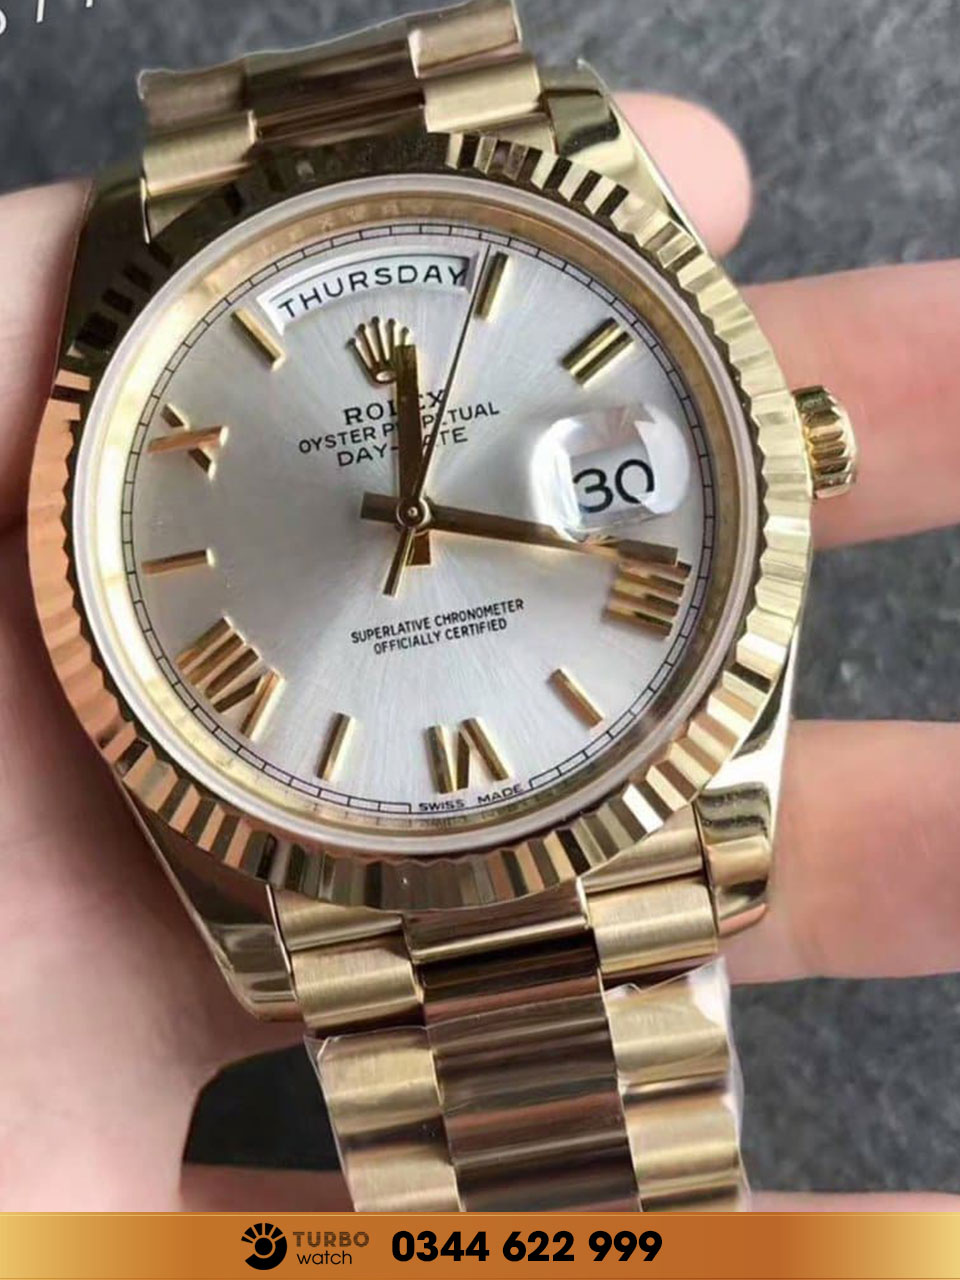 Rolex Oyster Perpetual Day-Date 18K Yellow Gold 18238 fake 1-1 cao cấp